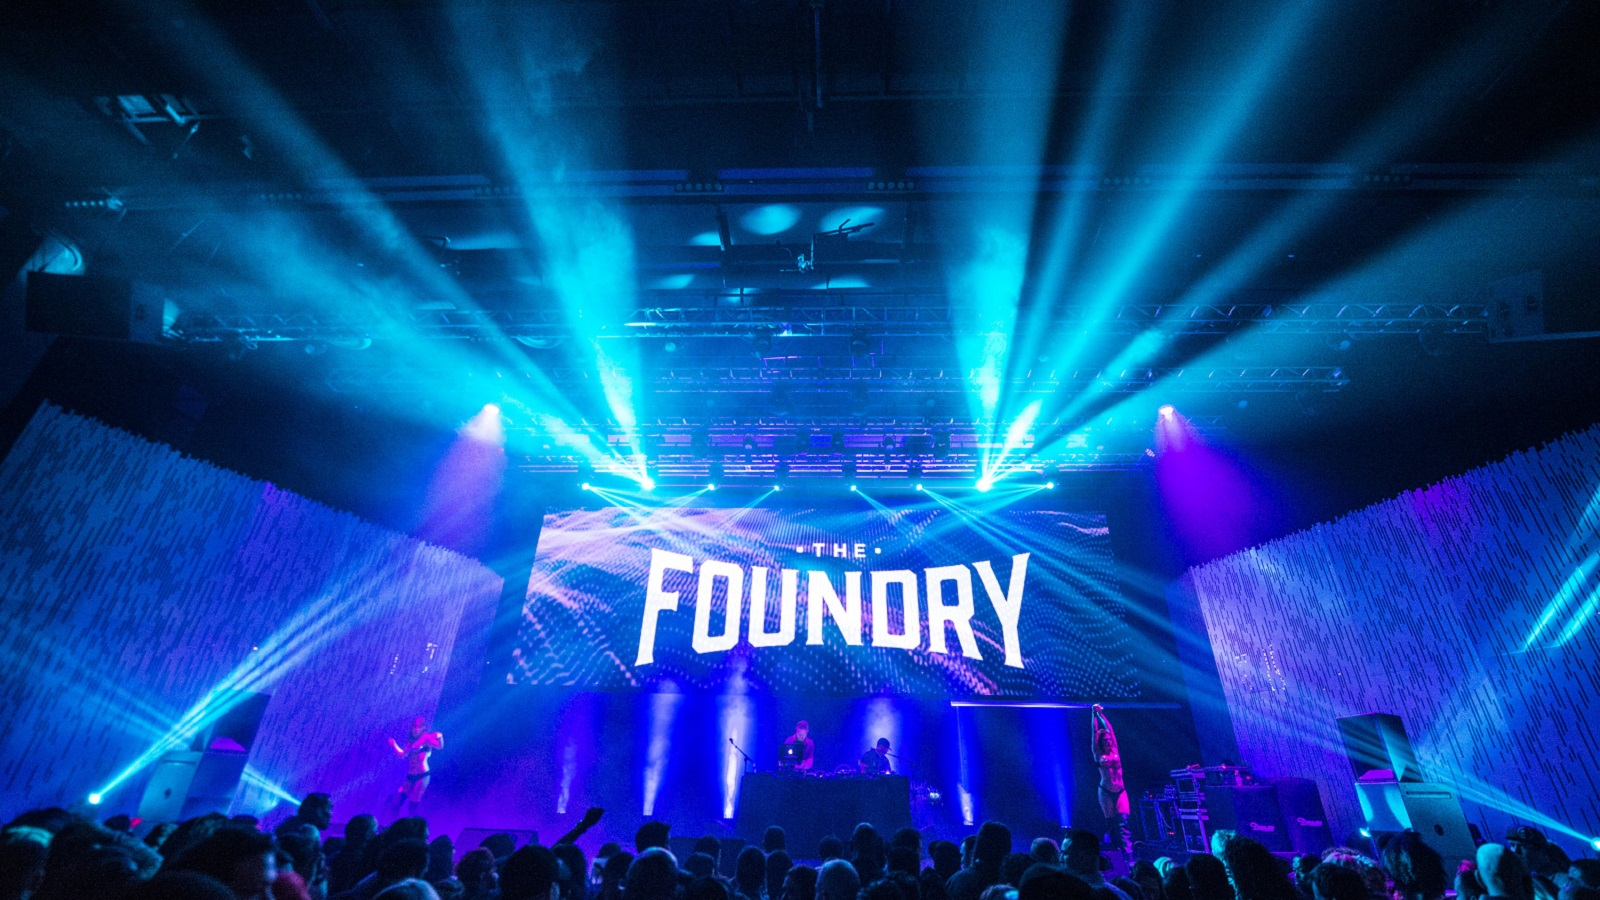 Las Vegas Nightlife - Foundry